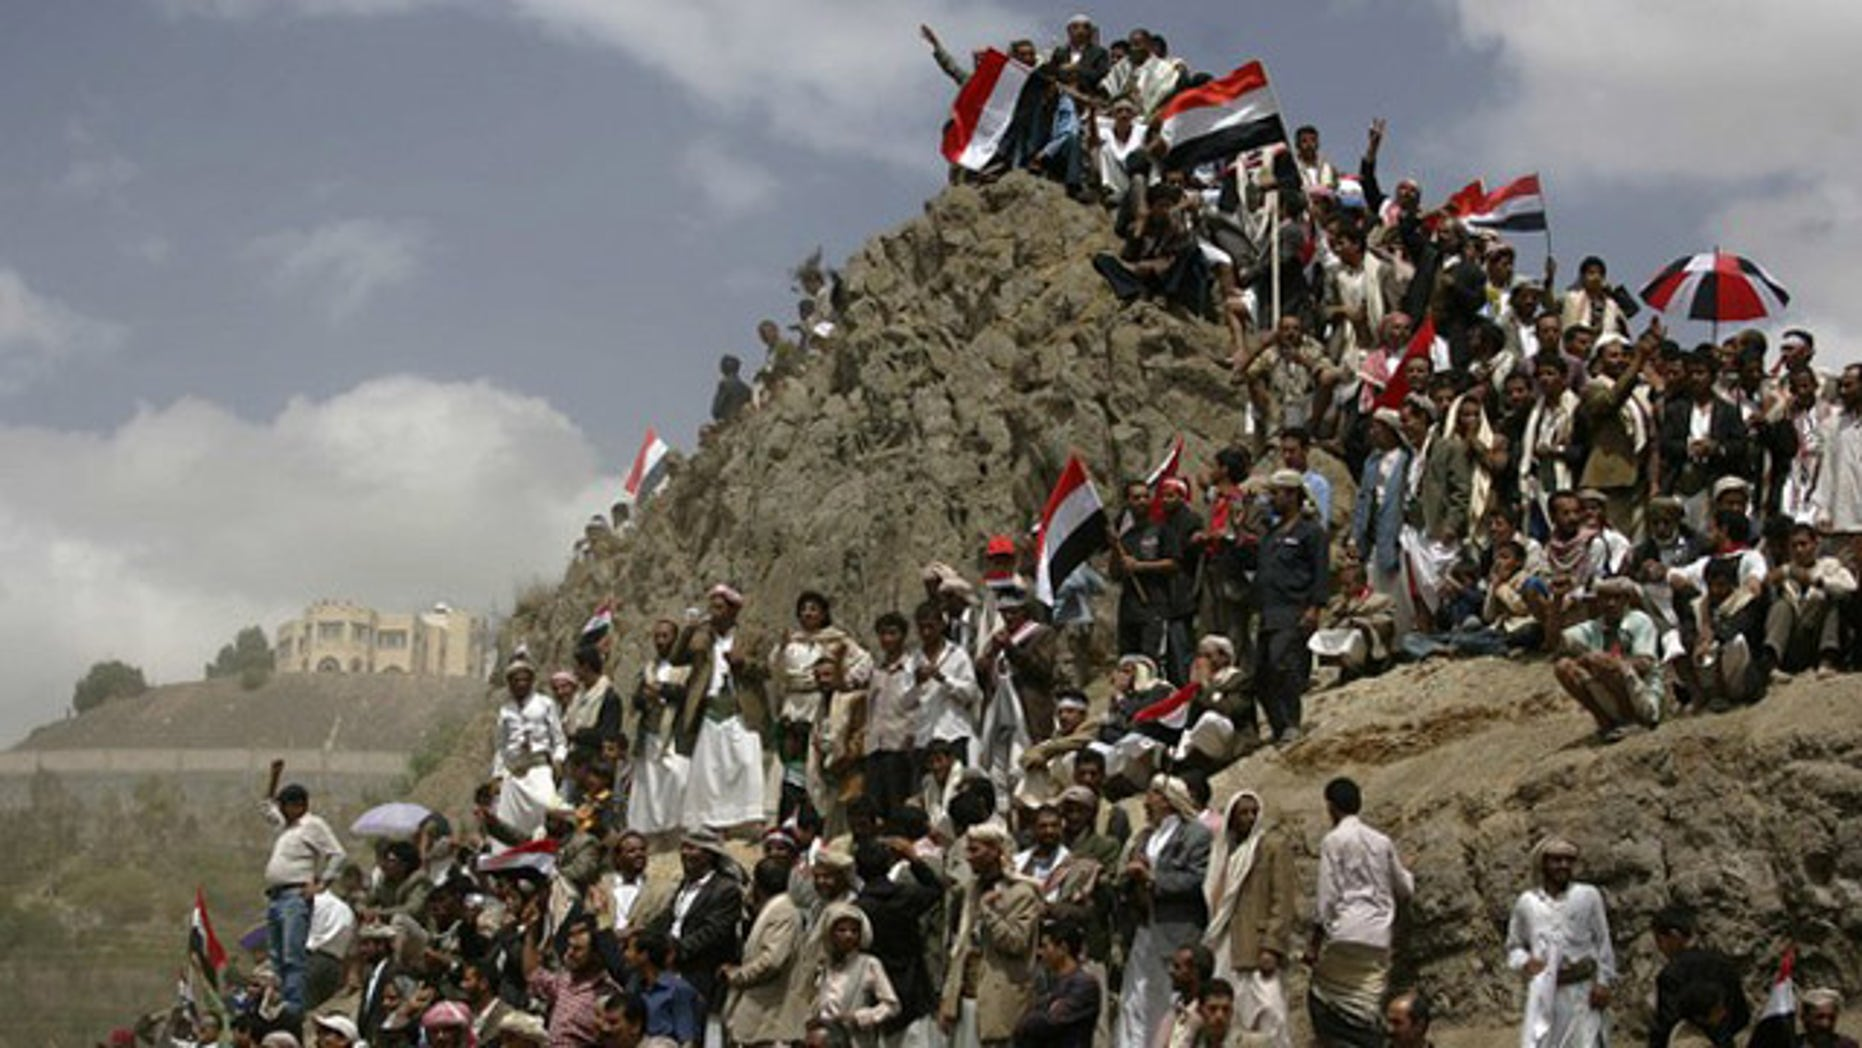 May 22: Anti-government protesters gather on a hillside to watch a ceremony commemorating the anniversary of Yemen's reunification in Sanaa (Reuters).